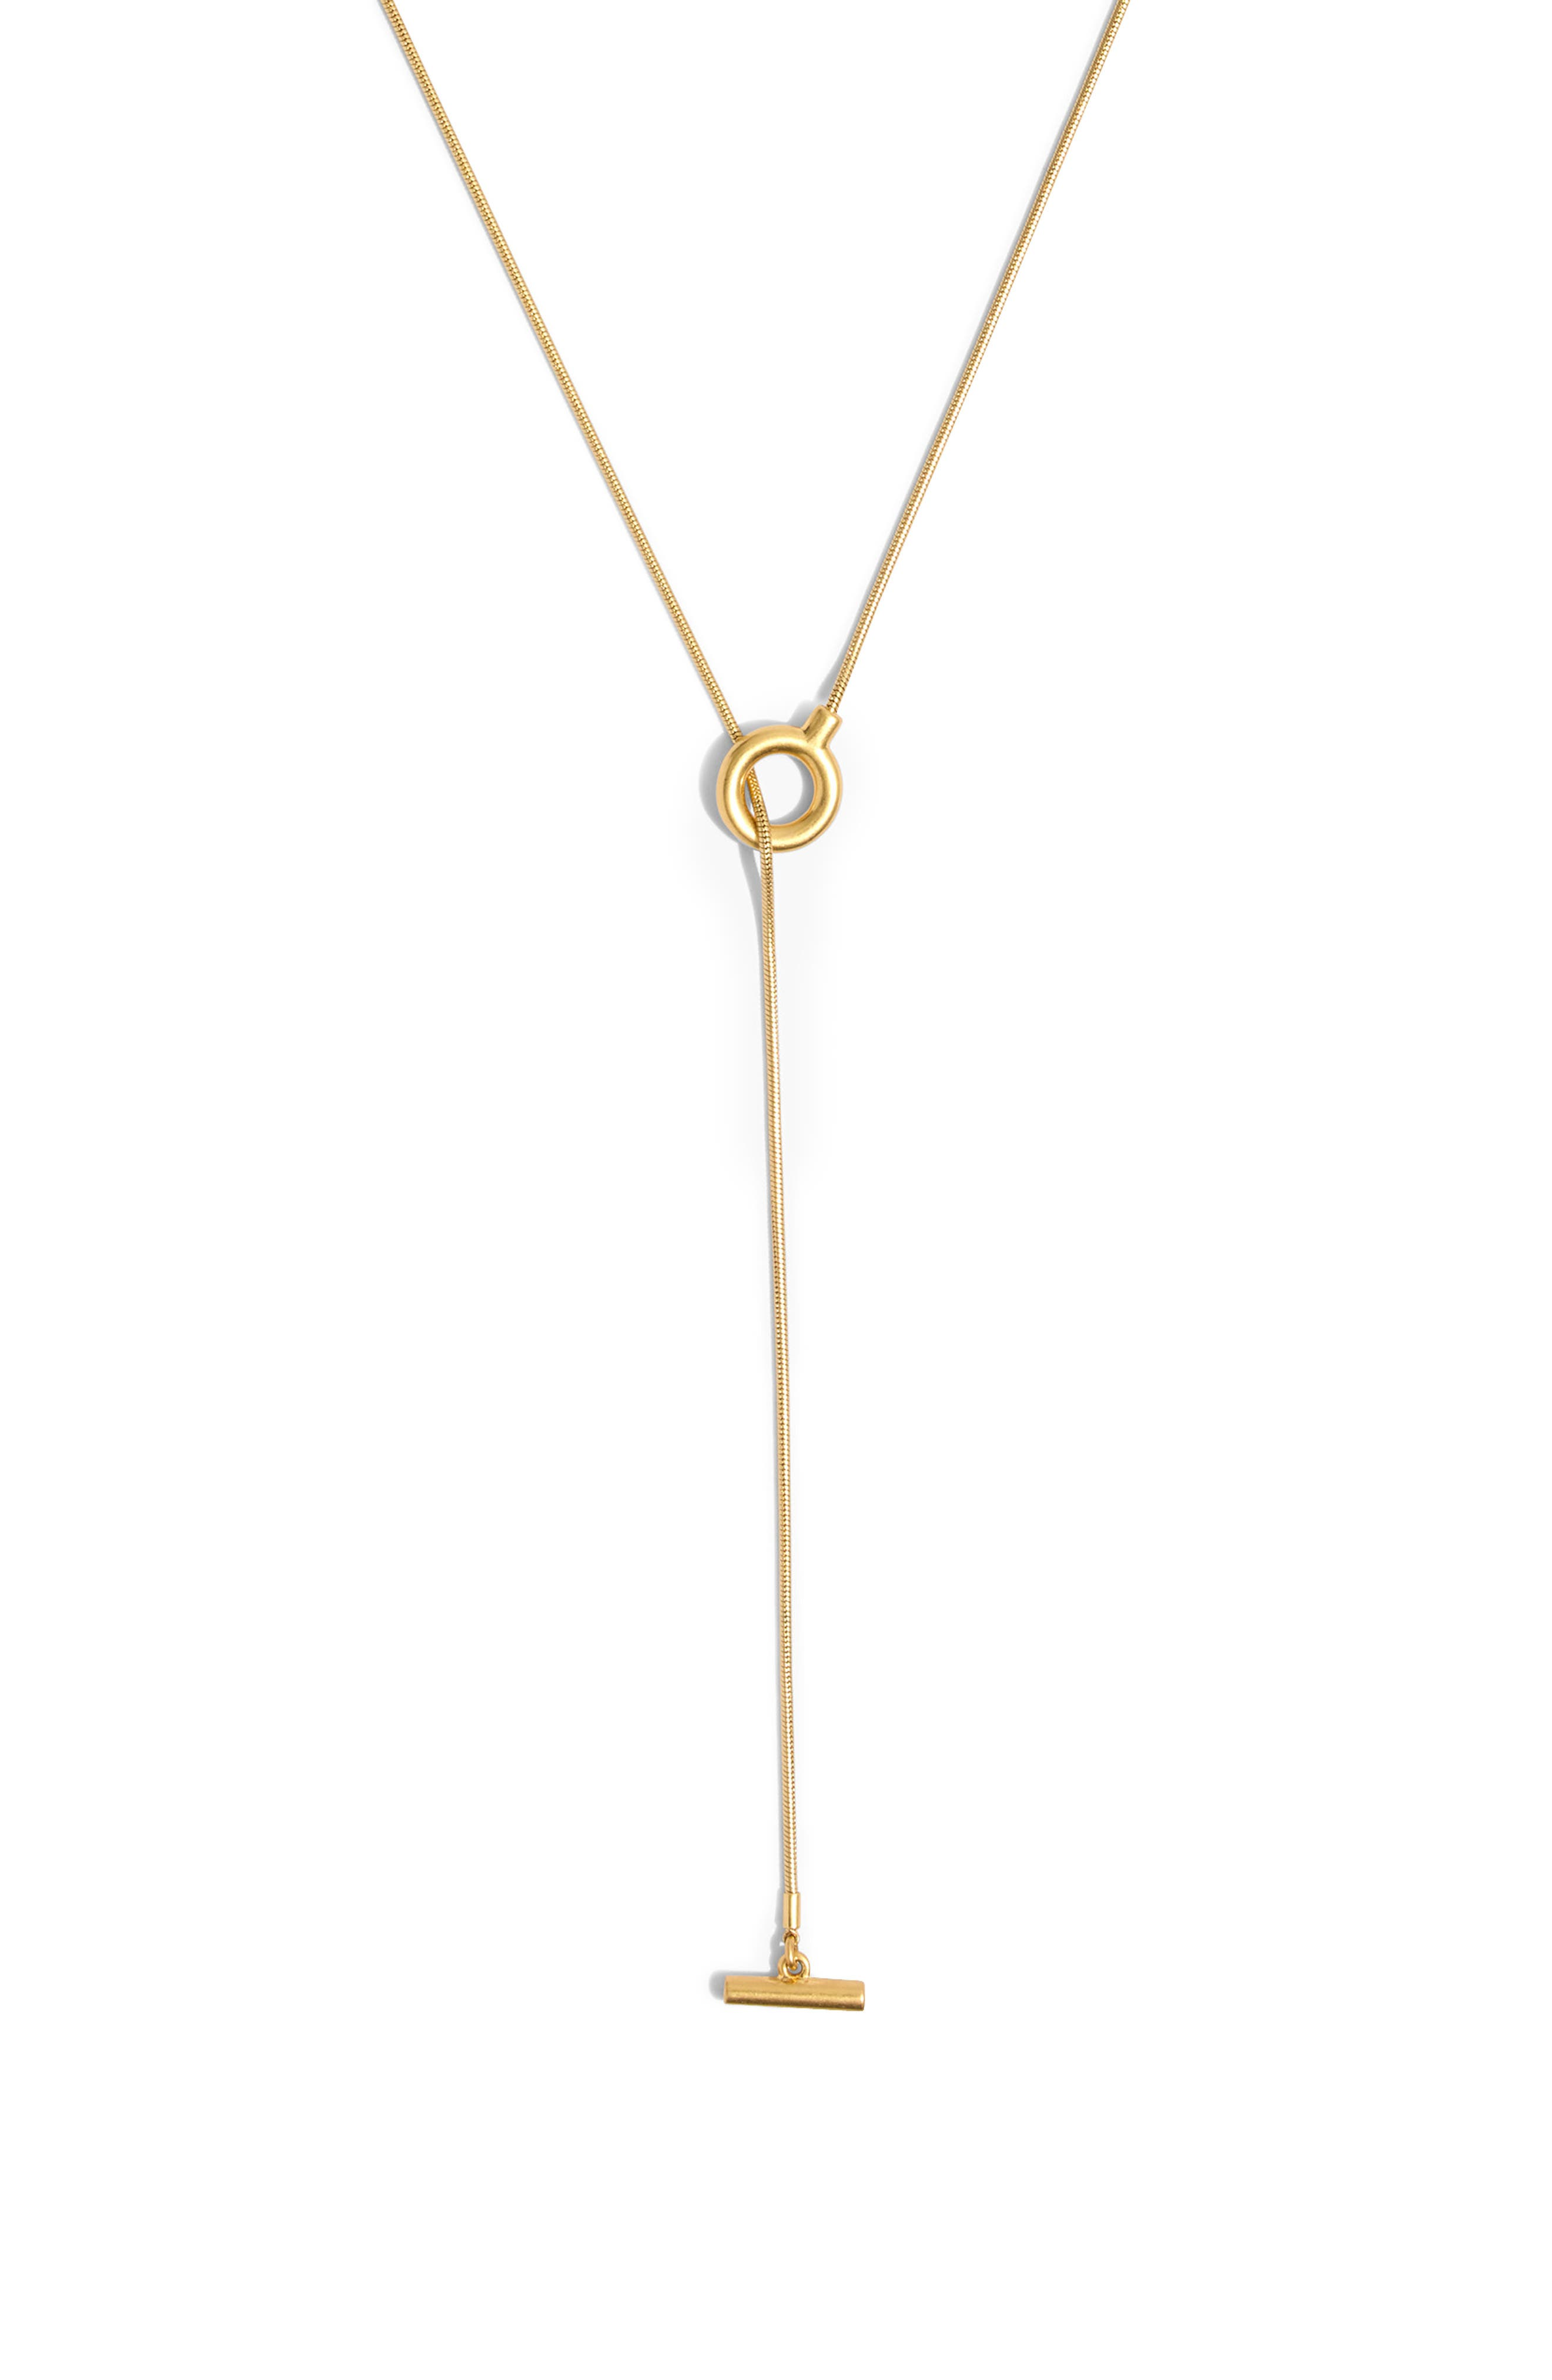 MADEWELL, Toggle Lariat Necklace, Alternate thumbnail 2, color, VINTAGE GOLD